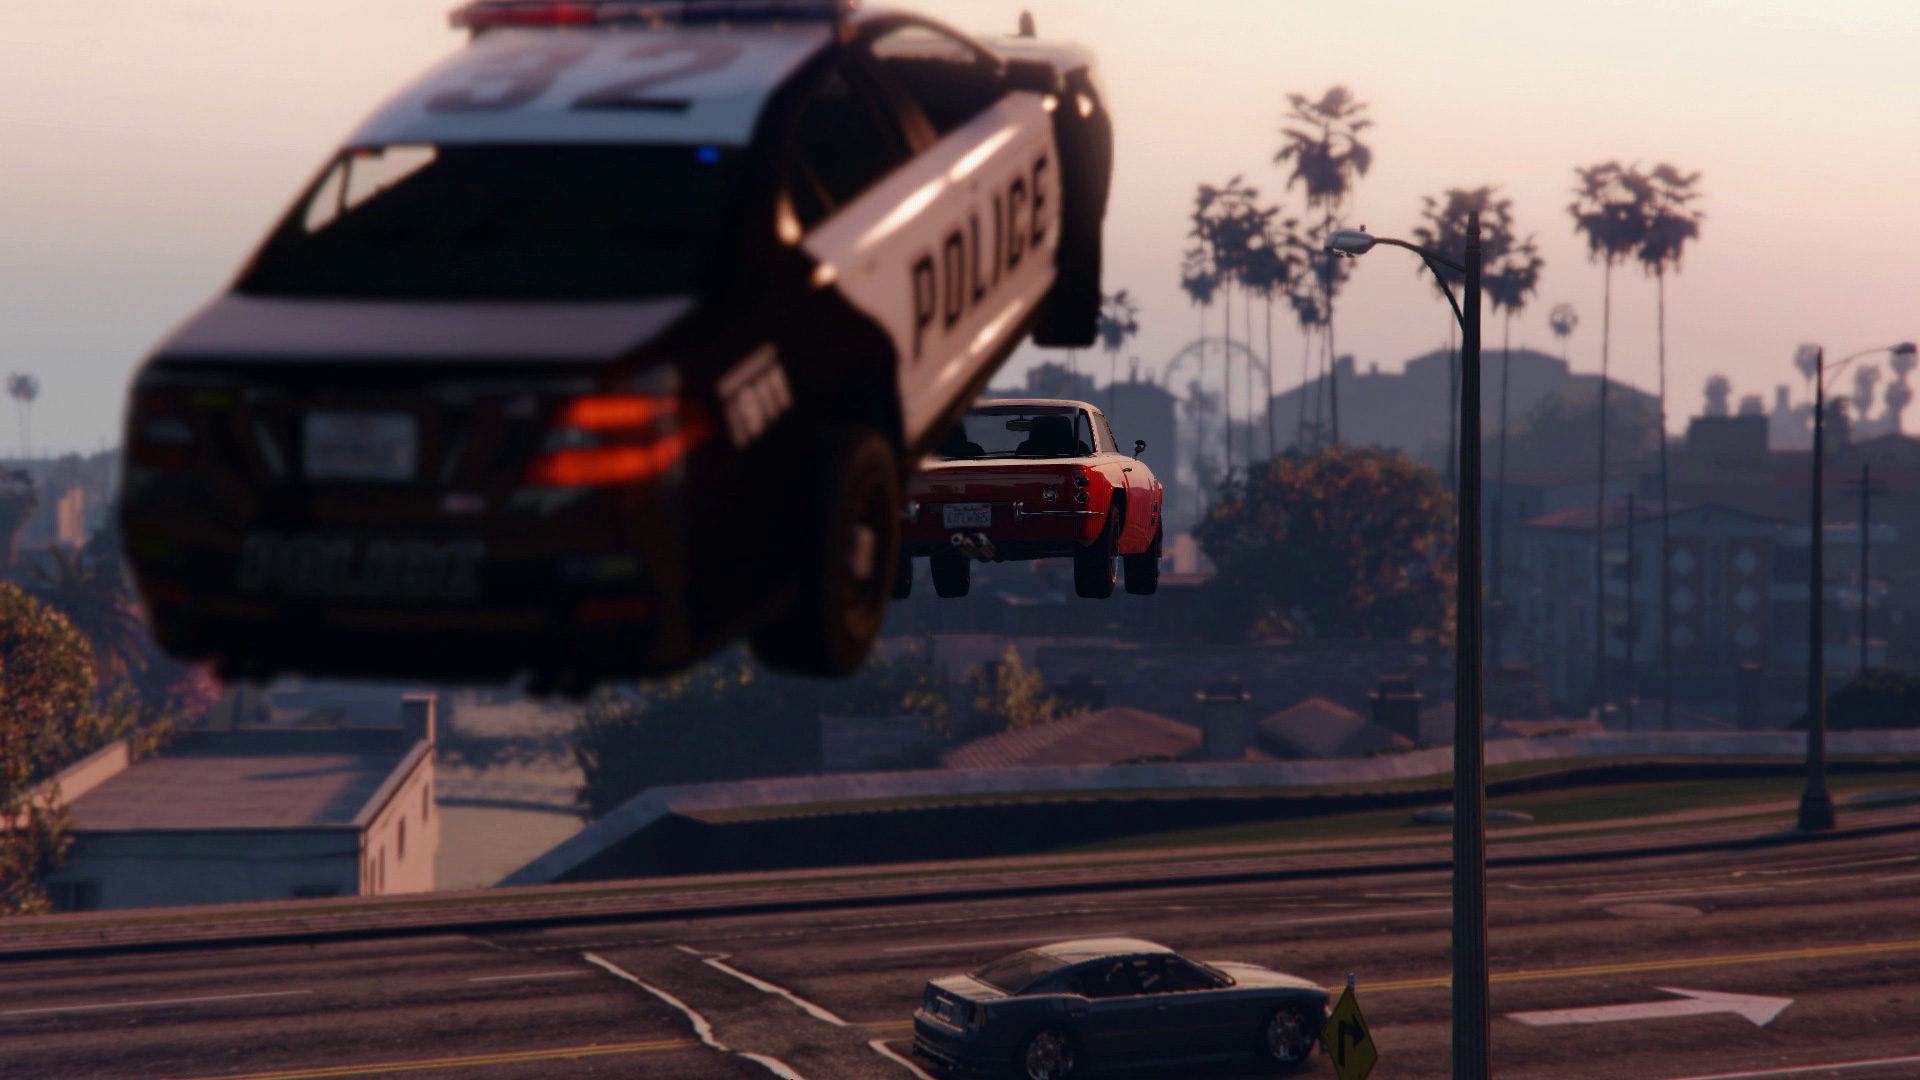 GTA fan says they're driving nonstop until Grand Theft Auto 6 launches